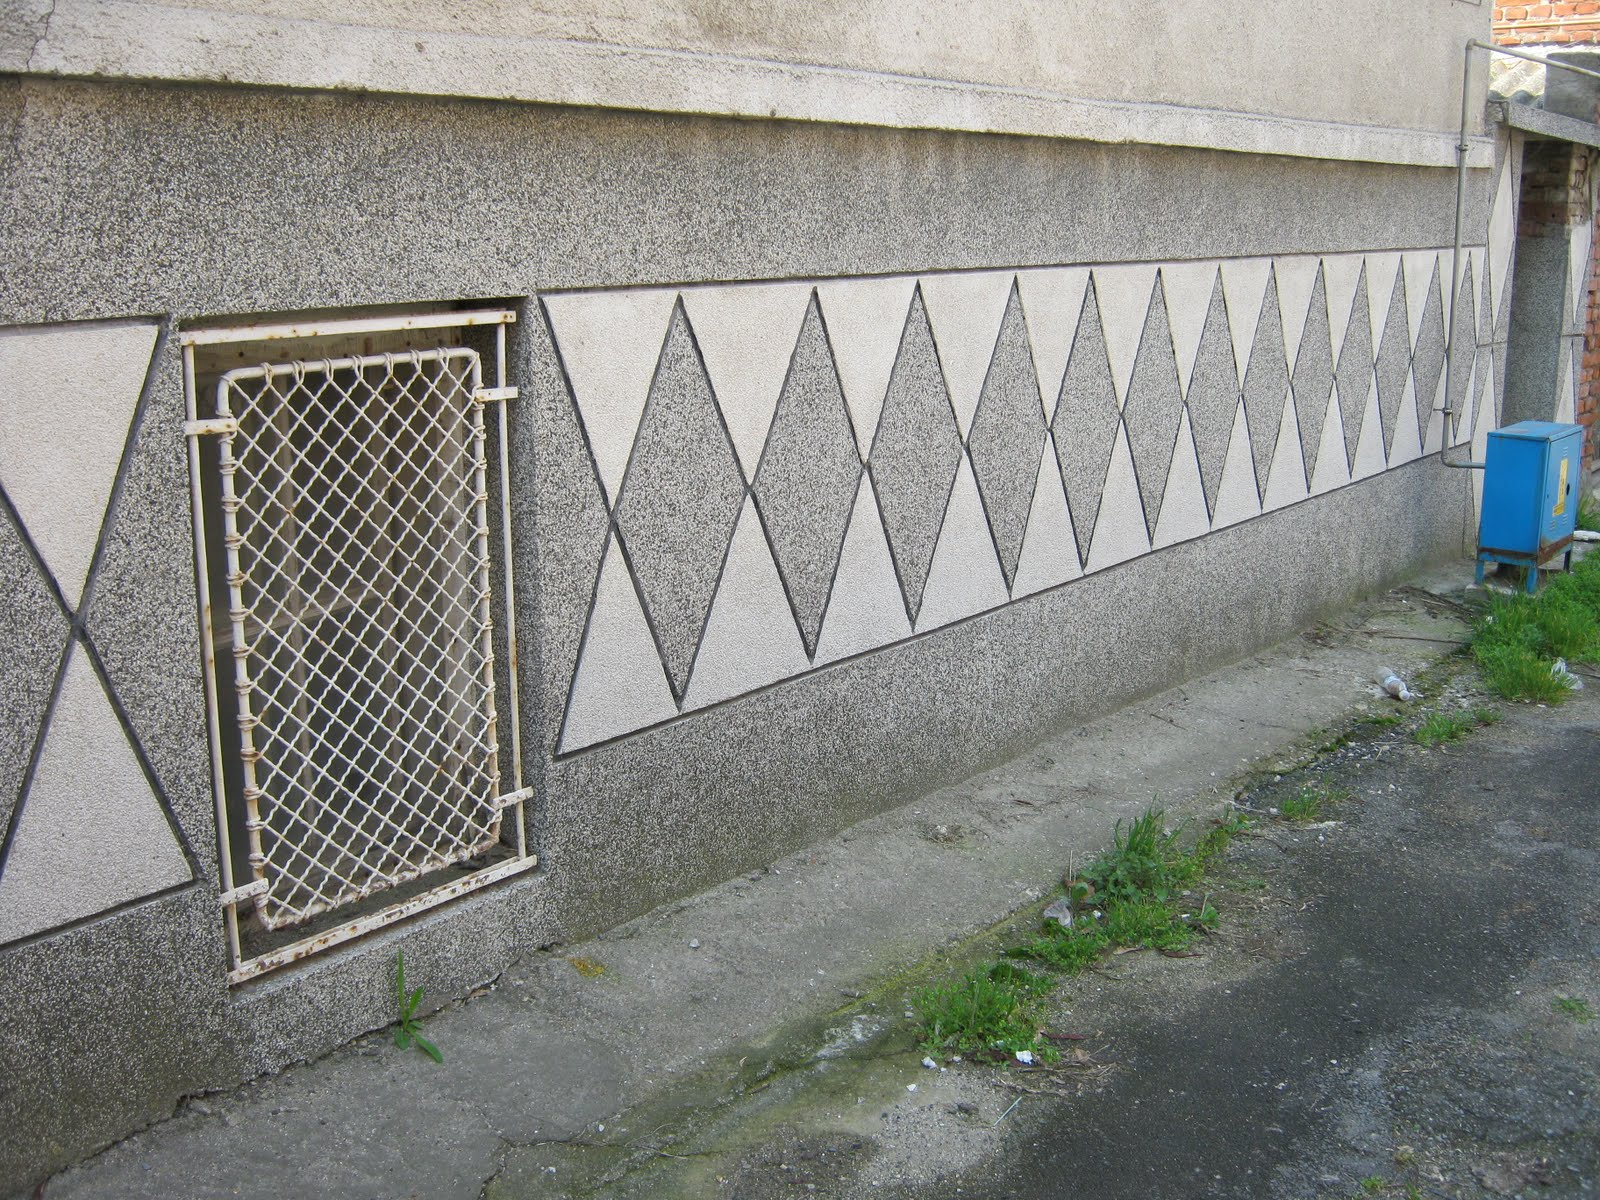 House Wall Design Images : Yambol daily picture a typical house design wall in